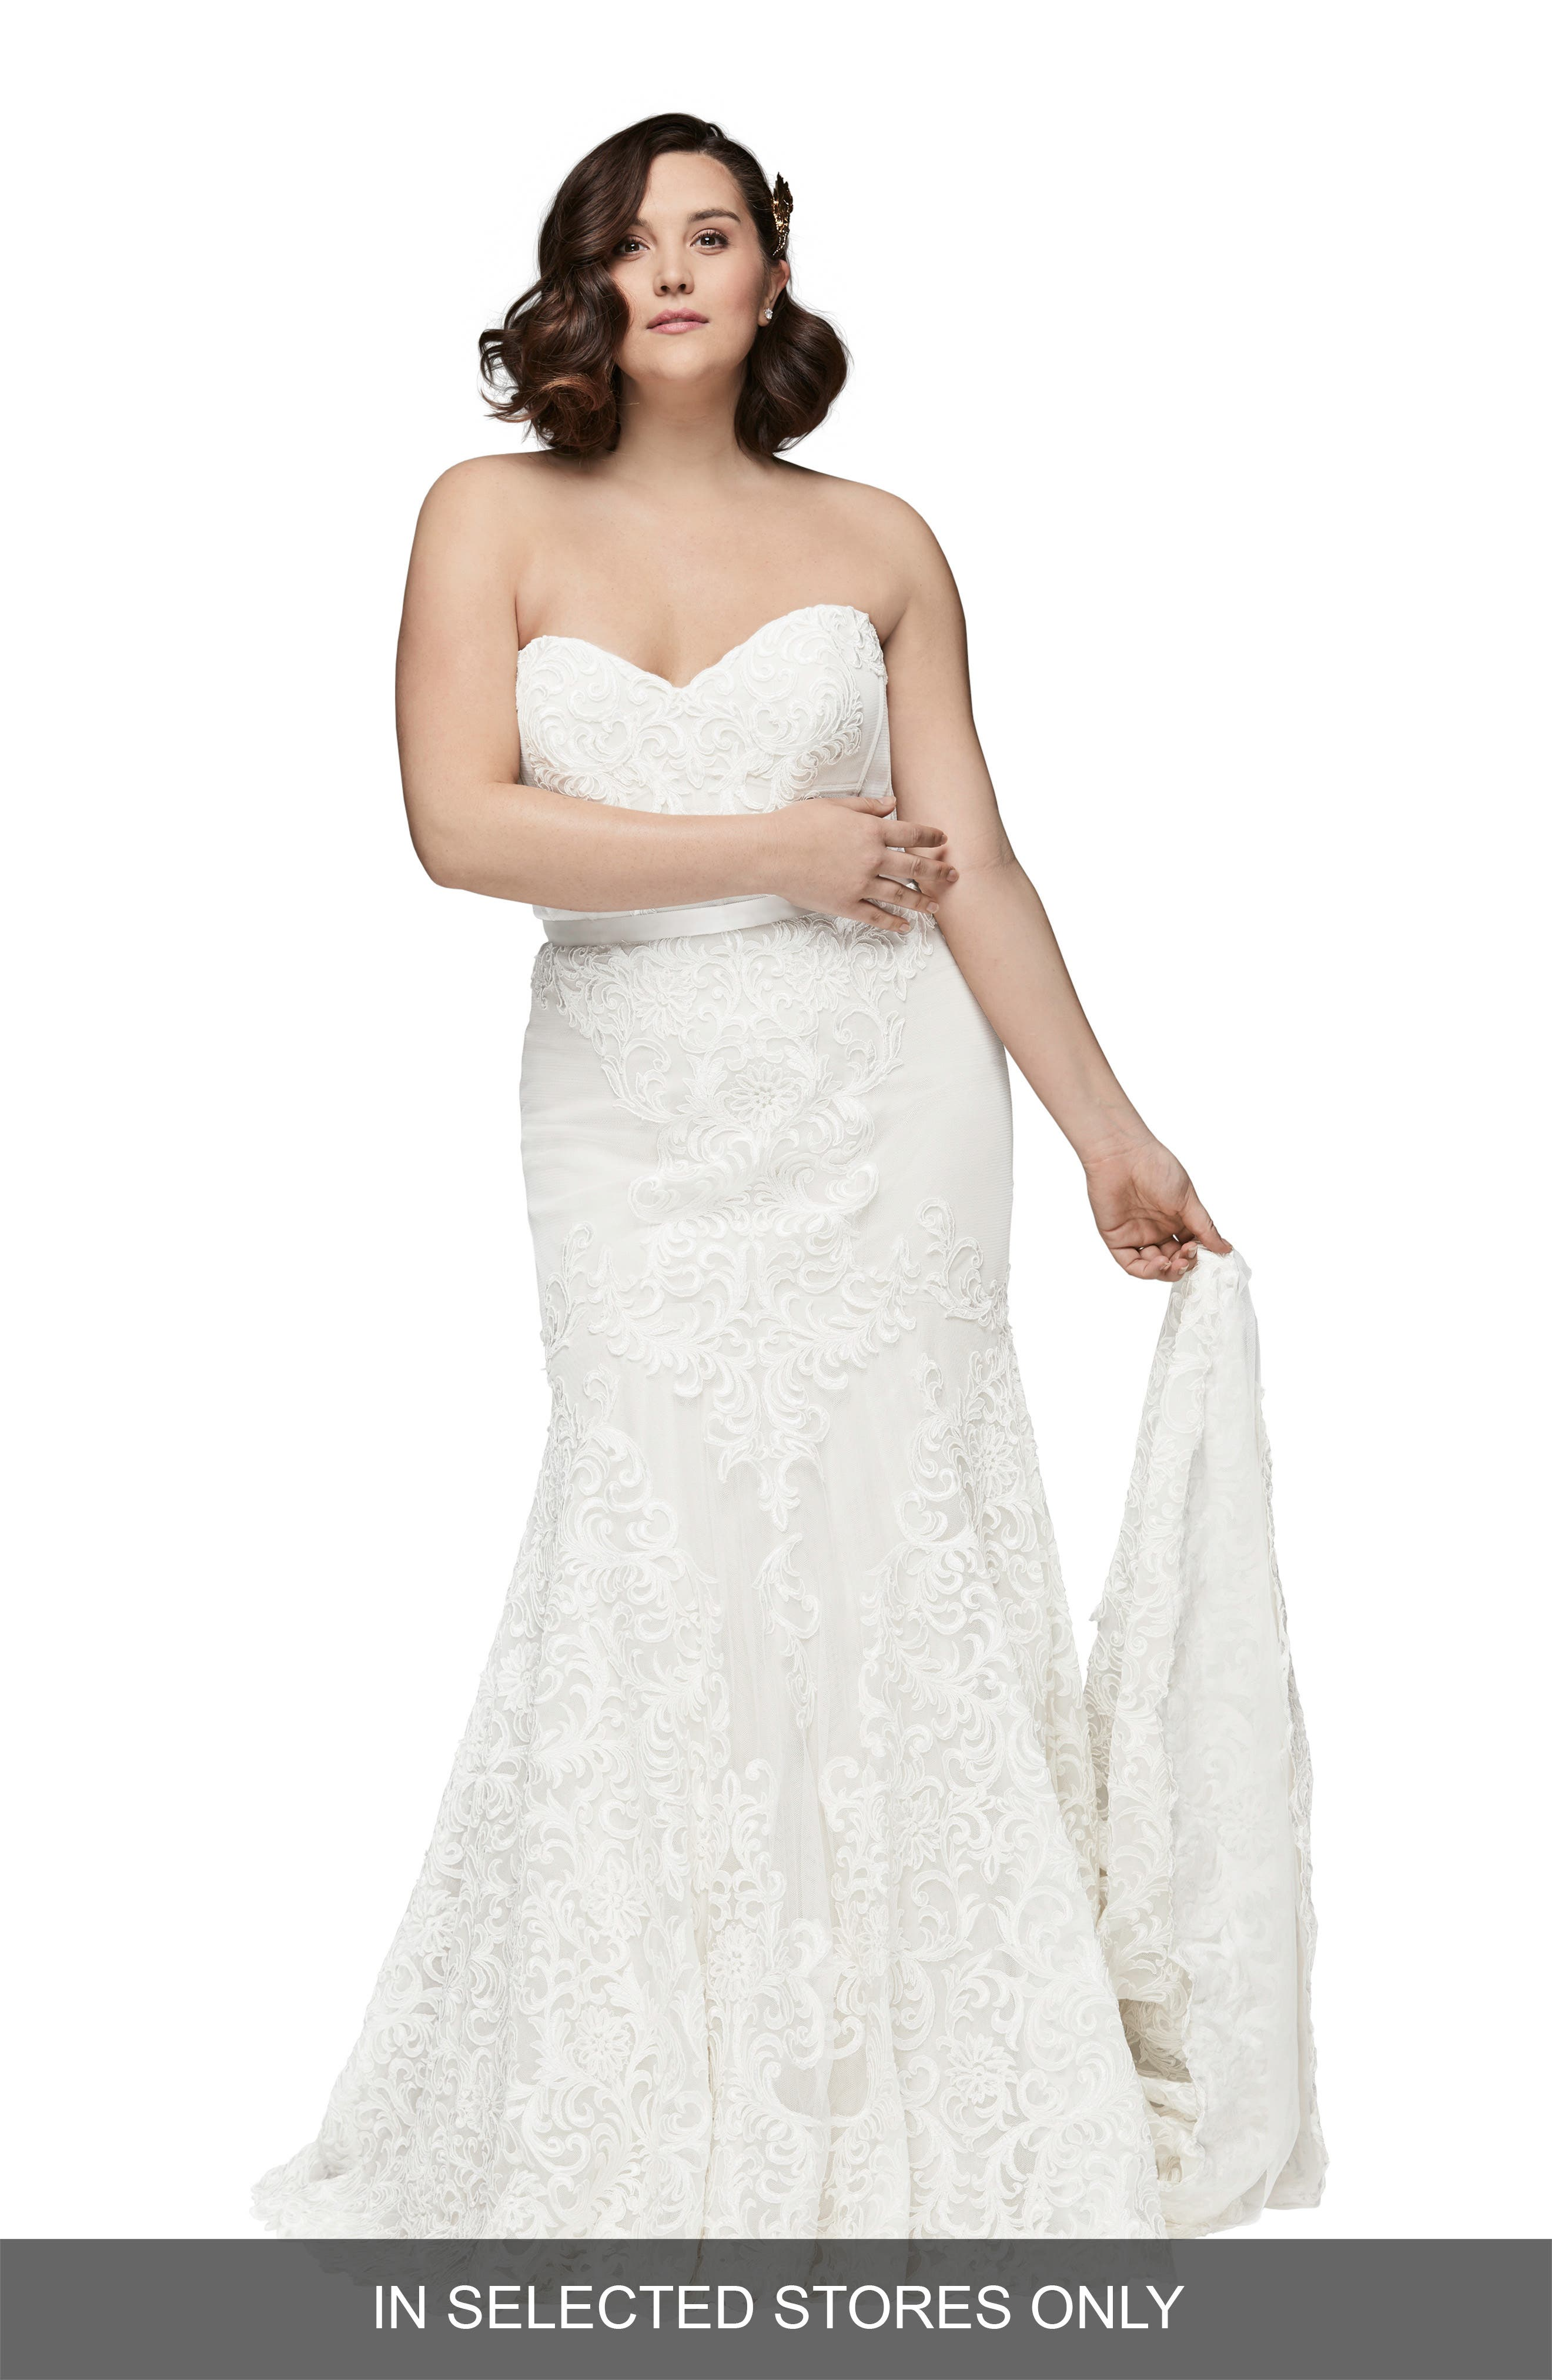 Alice Embroidered Strapless Trumpet Gown,                             Main thumbnail 1, color,                             IVORY/ IVORY/ GARDENIA